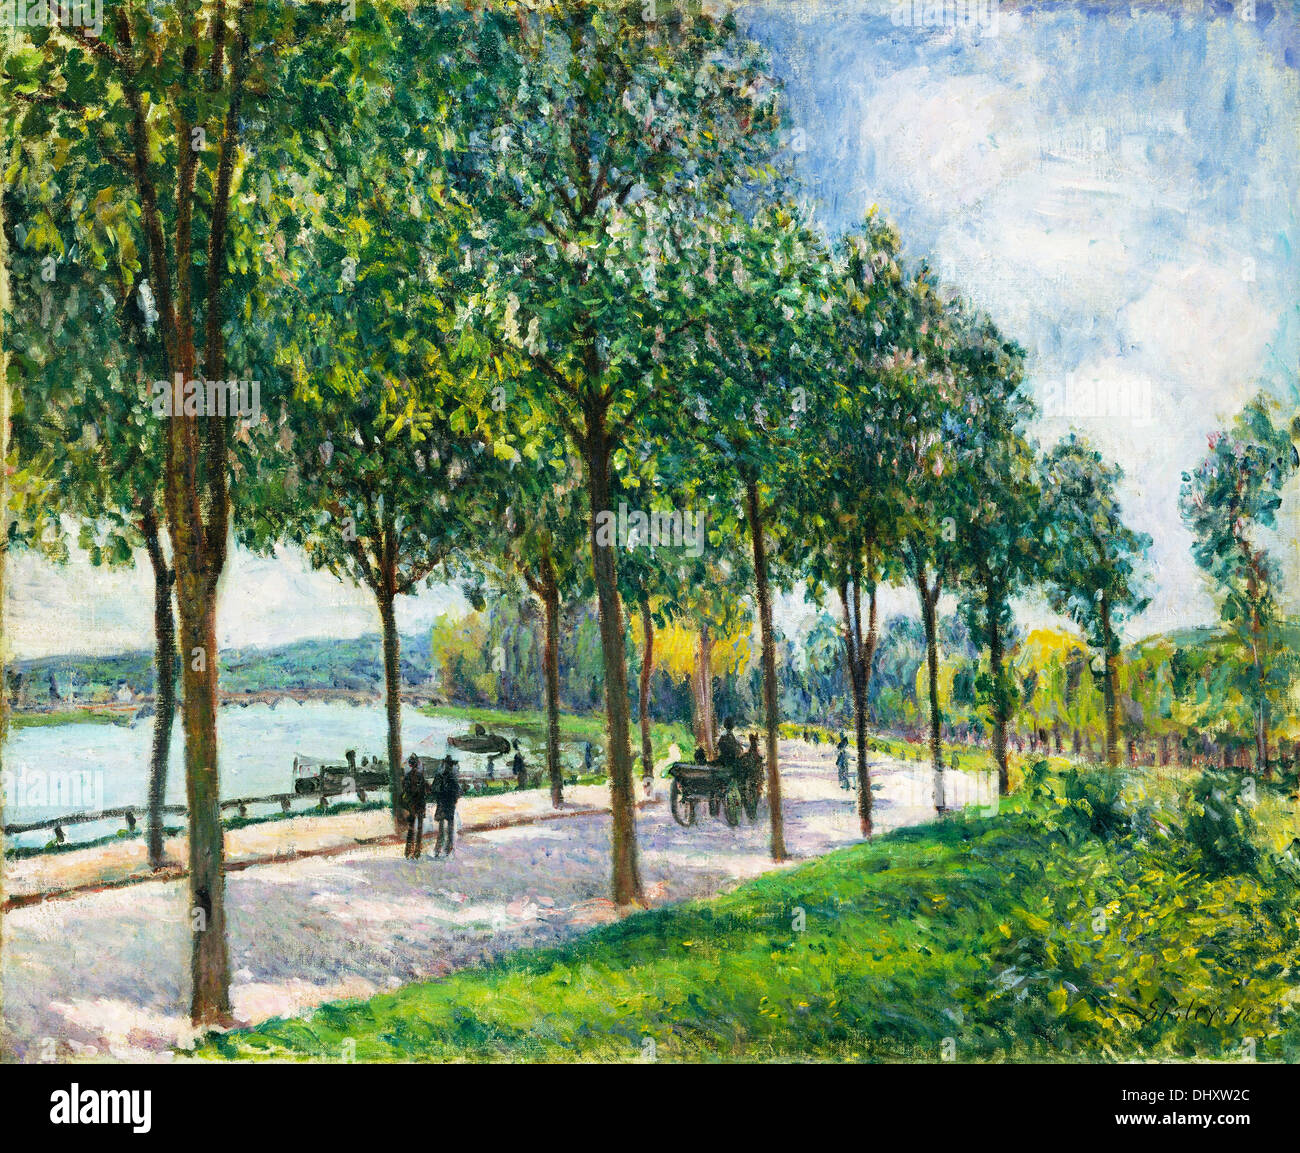 Allée of Chestnut Trees  - by Alfred Sisley, 1878 - Stock Image